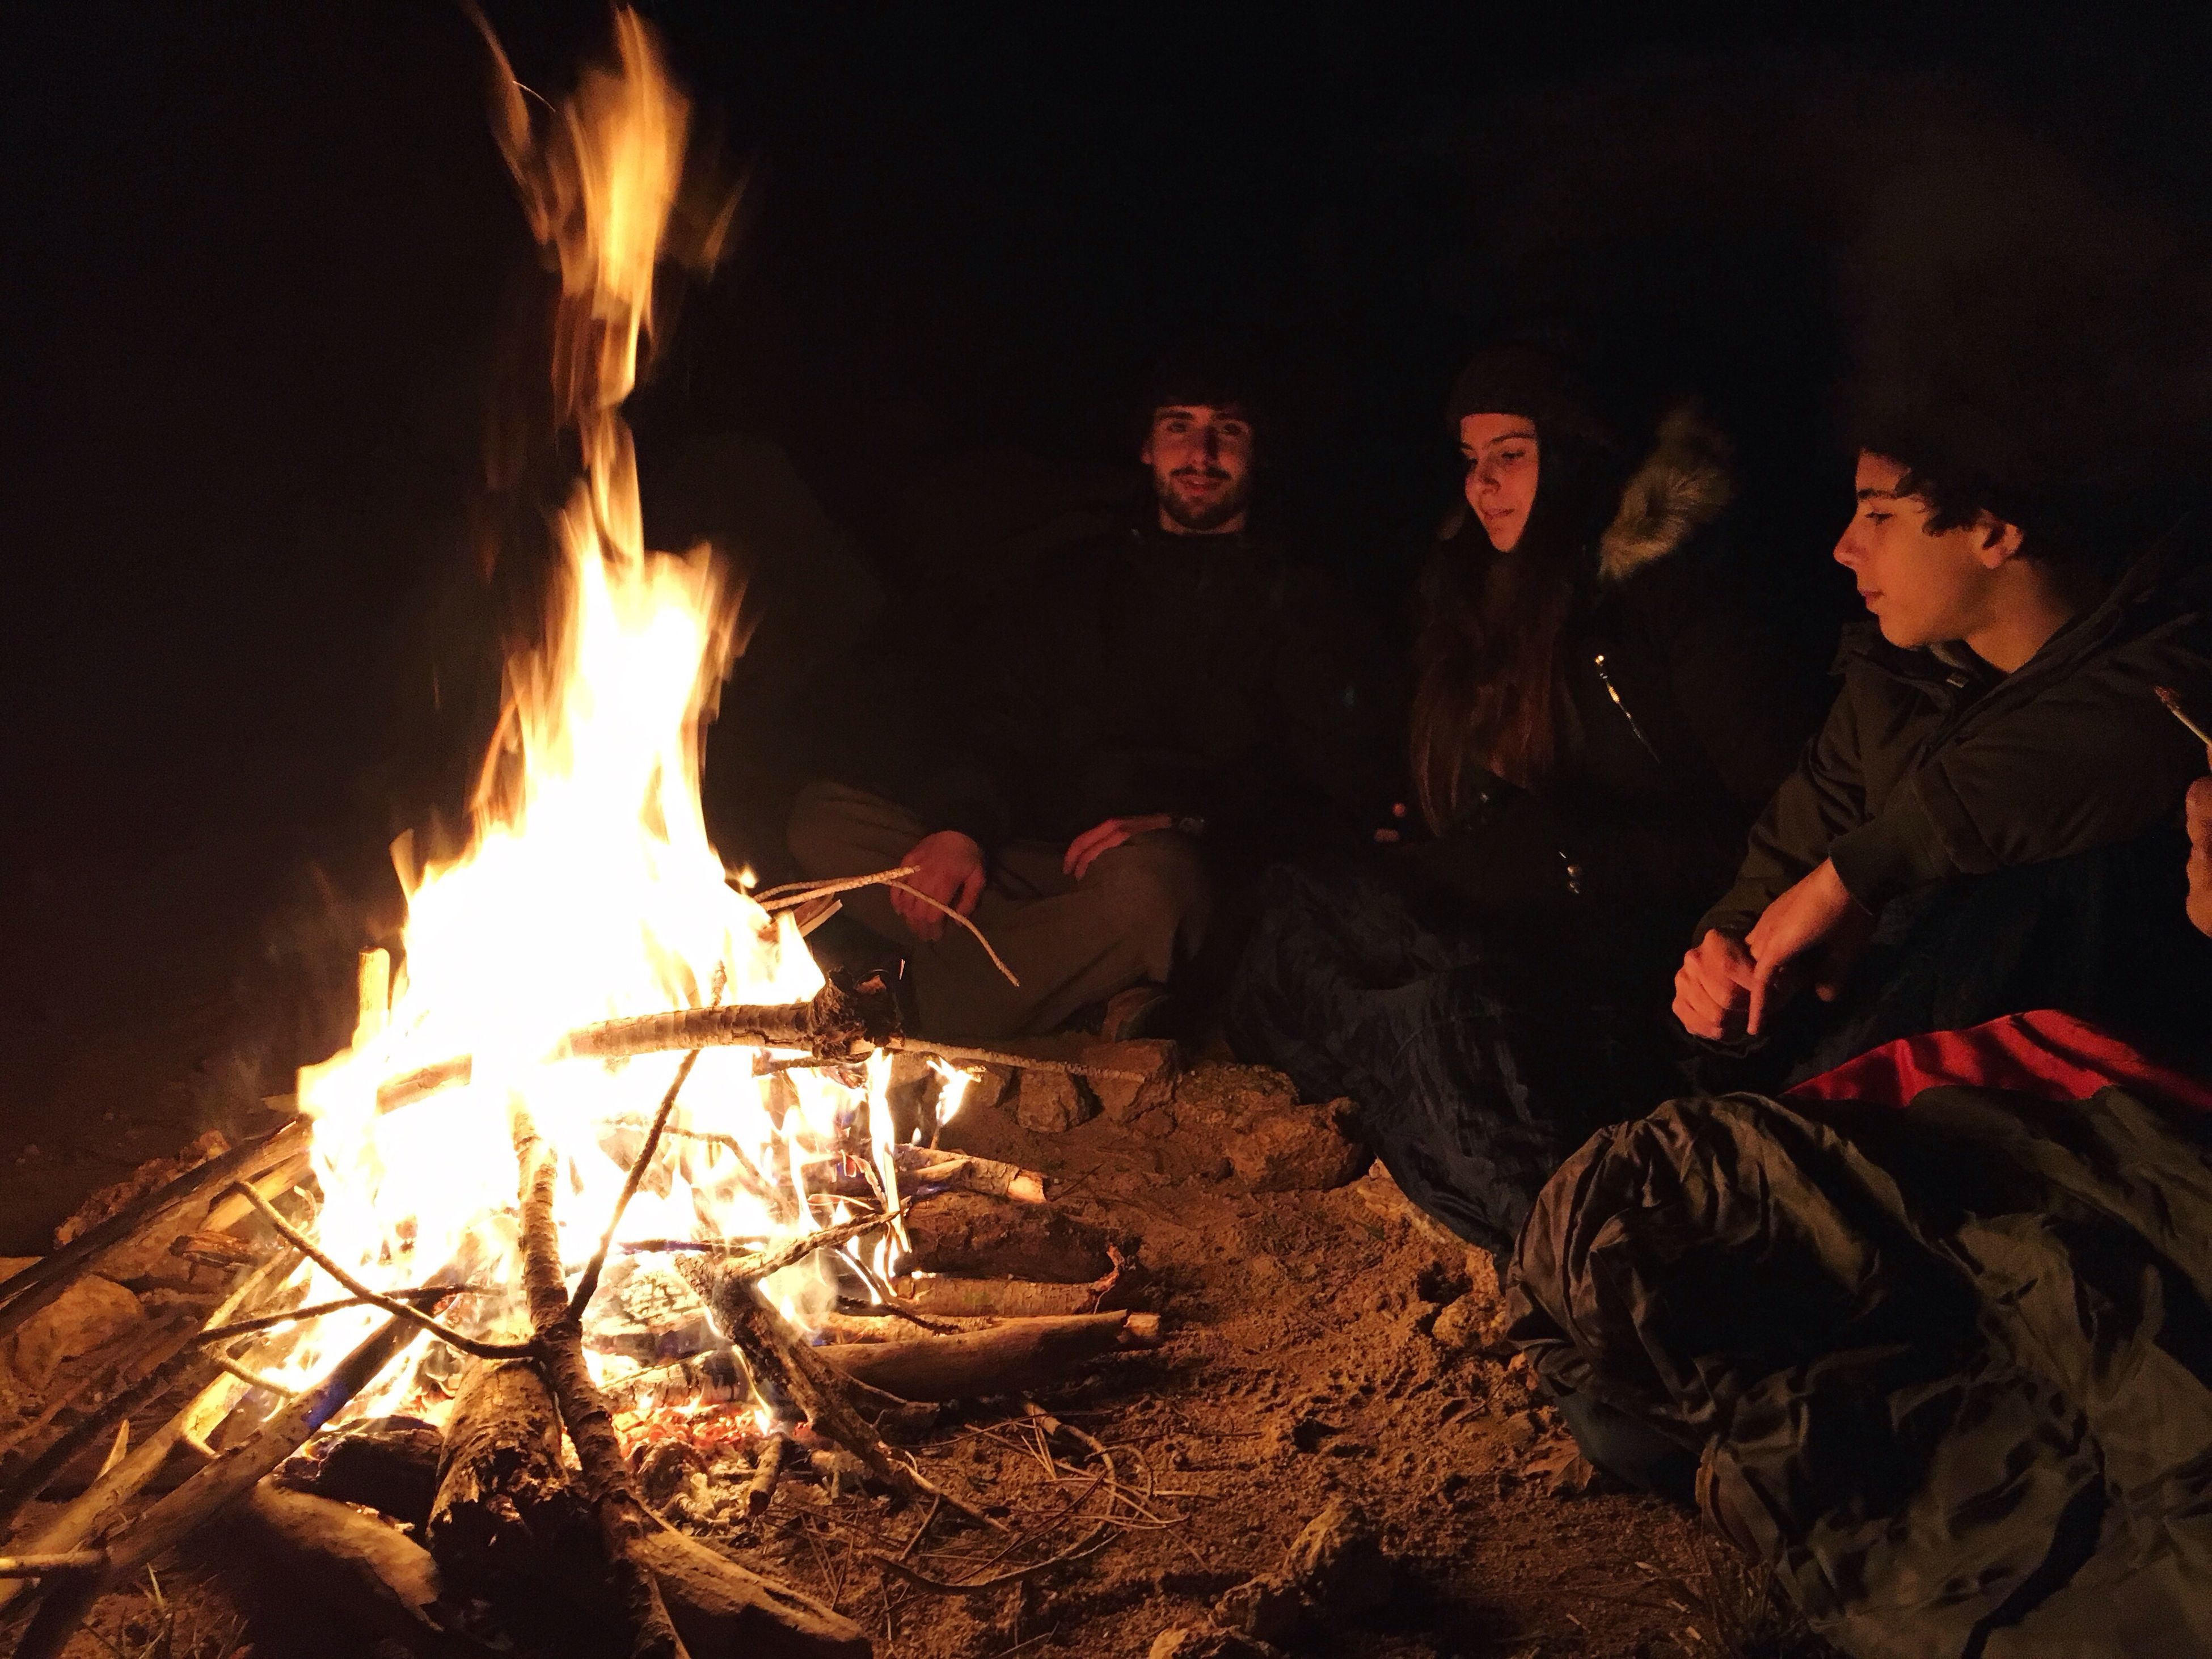 fire - natural phenomenon, flame, winter, night, heat - temperature, archival, burning, adventure, group of people, camping, friendship, adults only, illuminated, people, young adult, adult, only men, outdoors